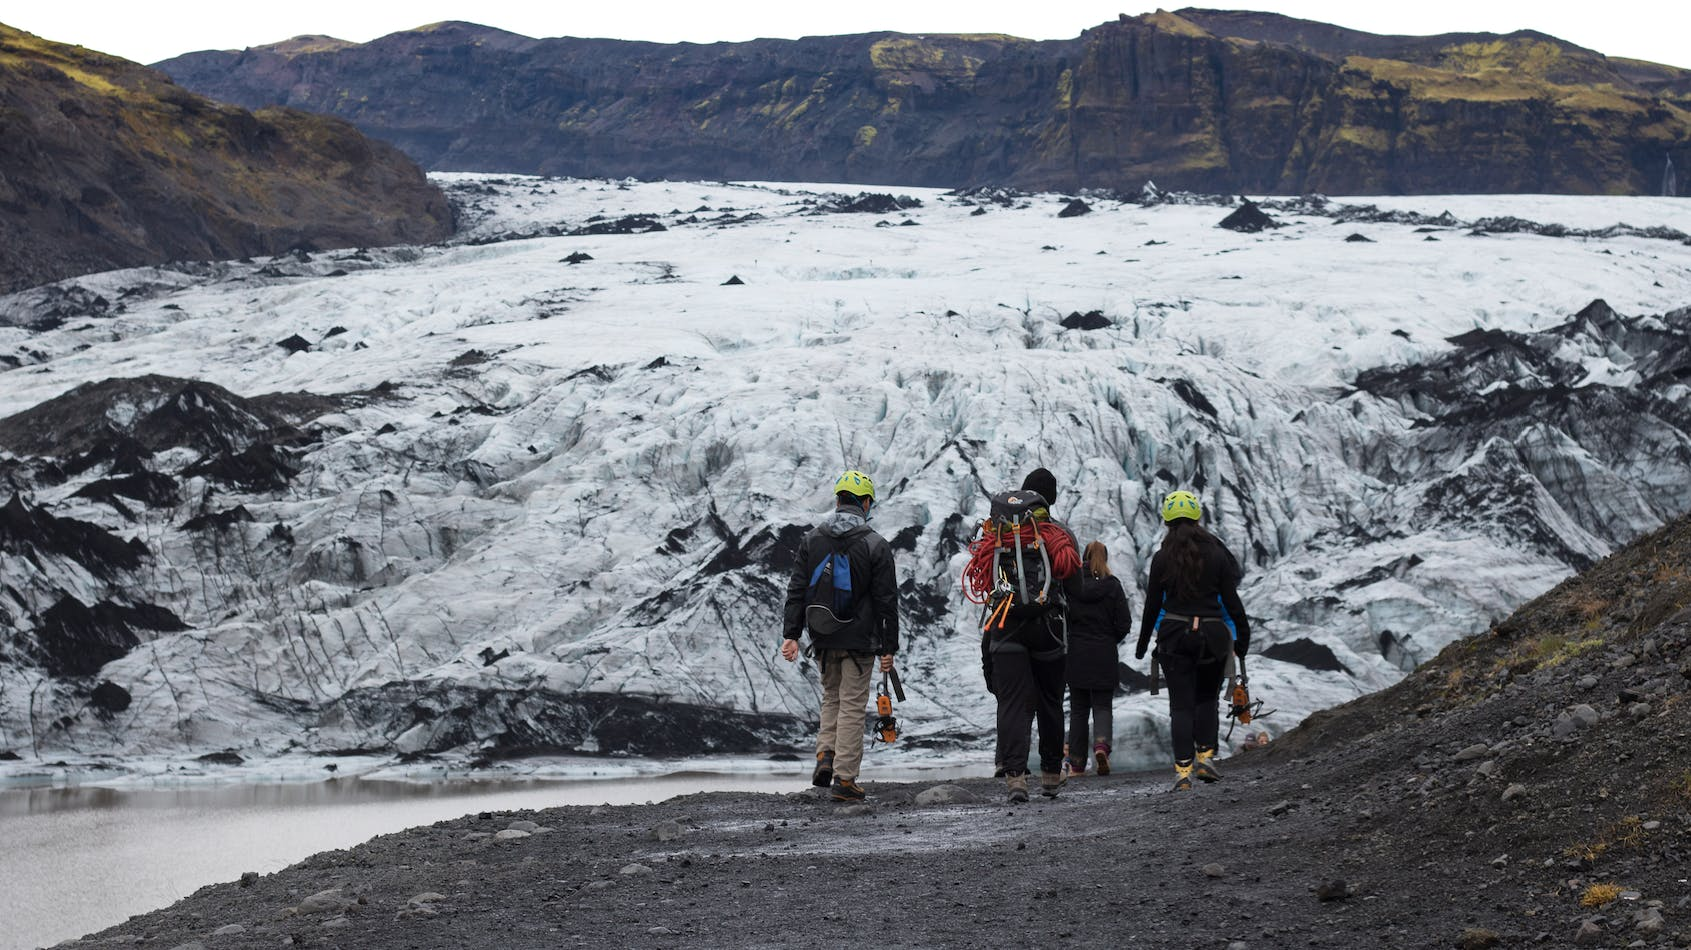 3 in 1 Bundle Discount Activity Tours | Ice on Ice with 2 Glacier Hikes & Blue Ice Cave - day 1